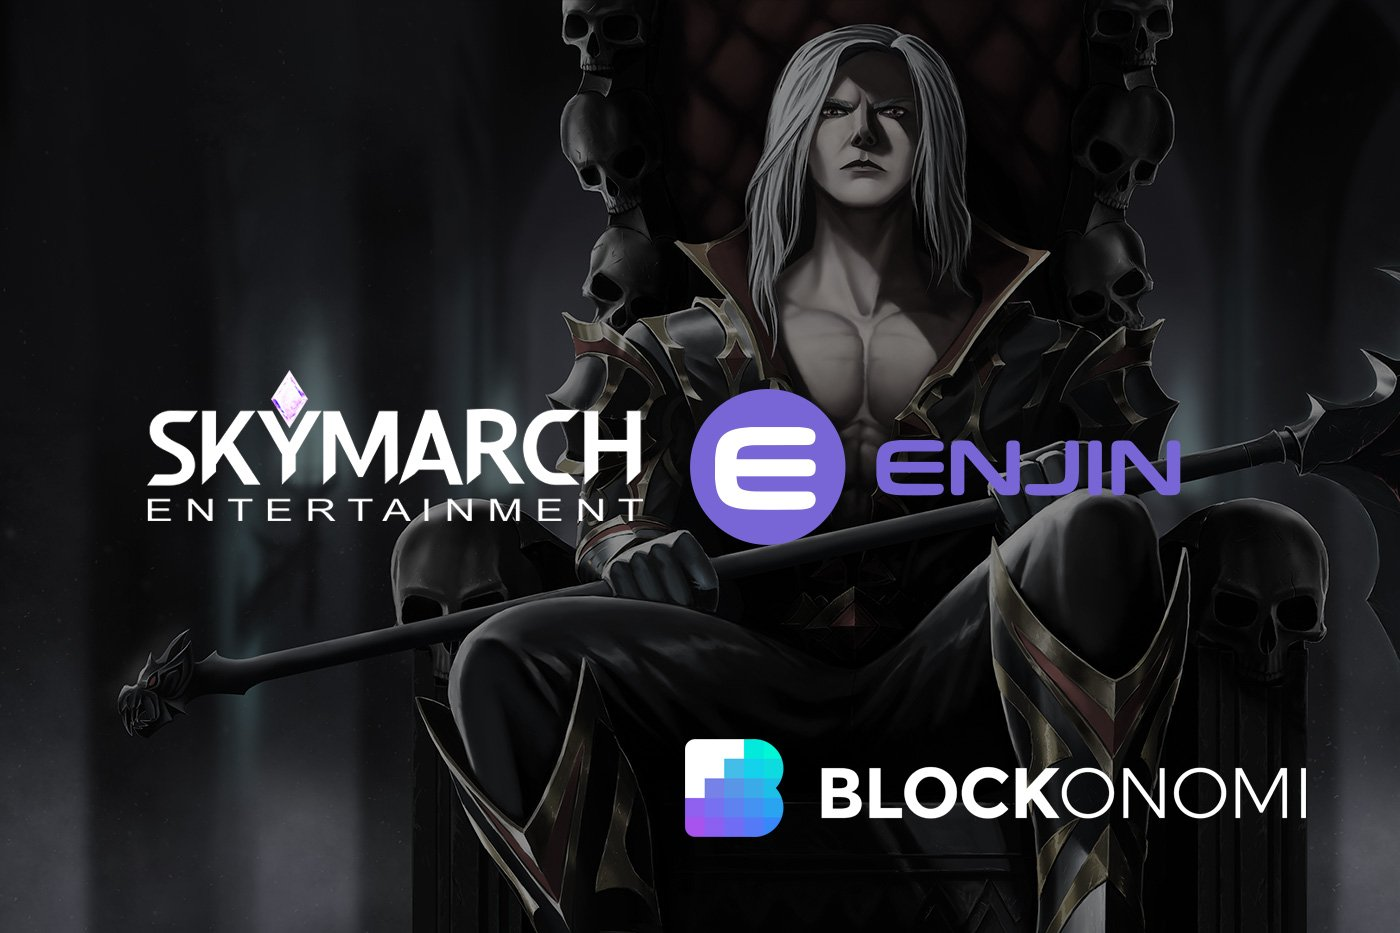 Ethereum-Based Enjin: Welcomes Spate of New Games in Recent Weeks